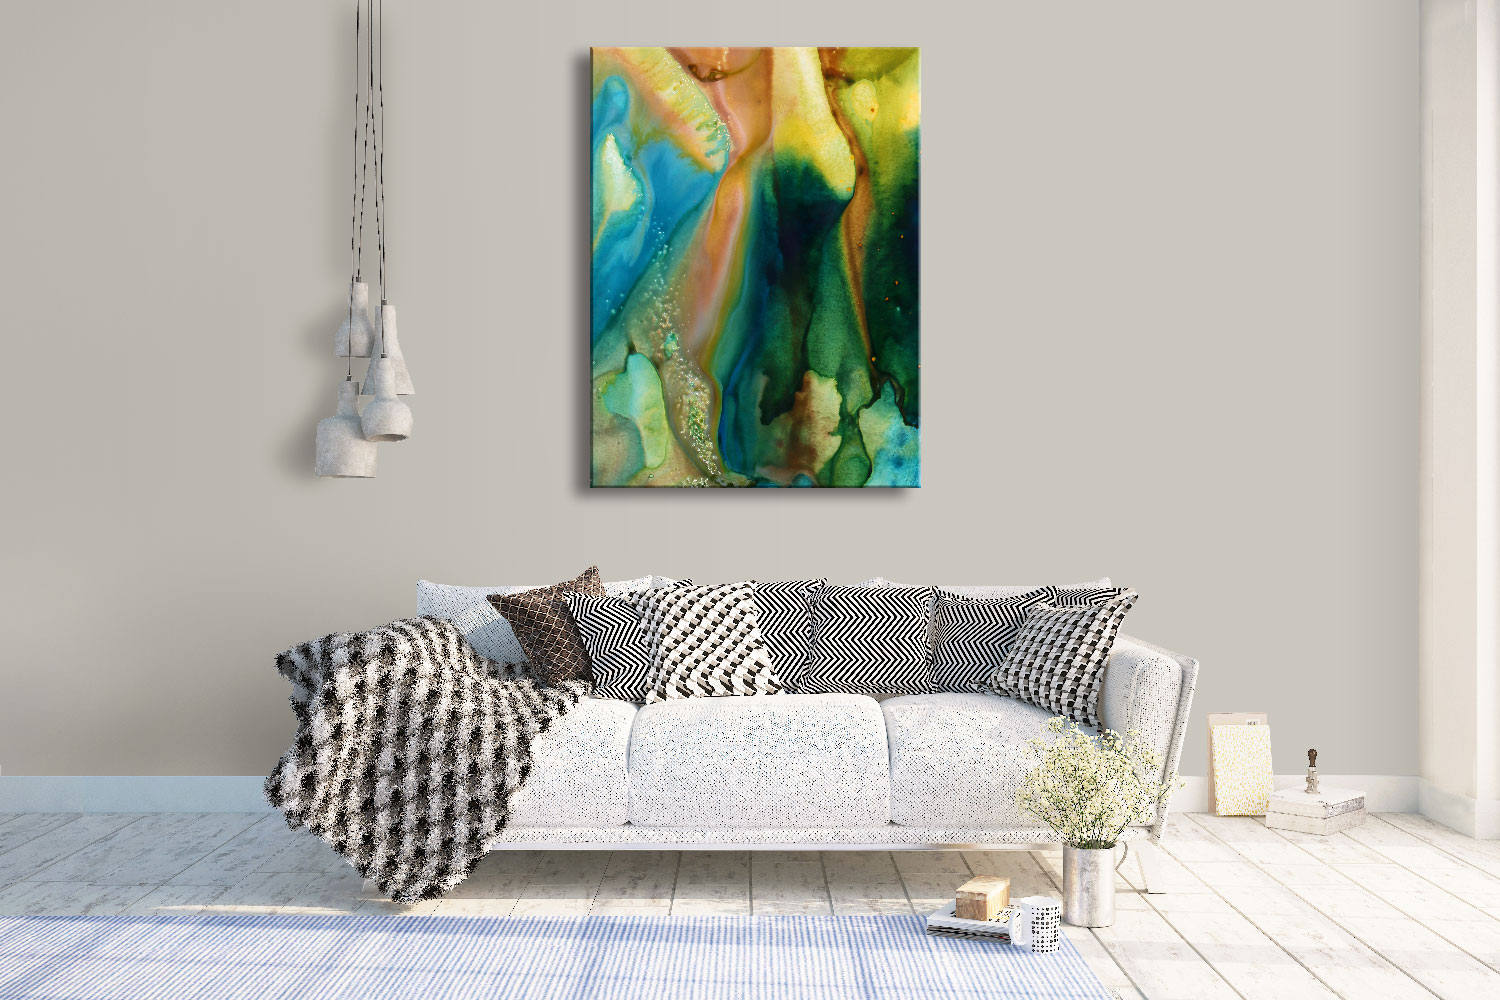 PRISMATIC SERIES #2015, Artist-Signed, Abstract Giclee Wall Art Print, Home Decor - Shulin Sun Studio